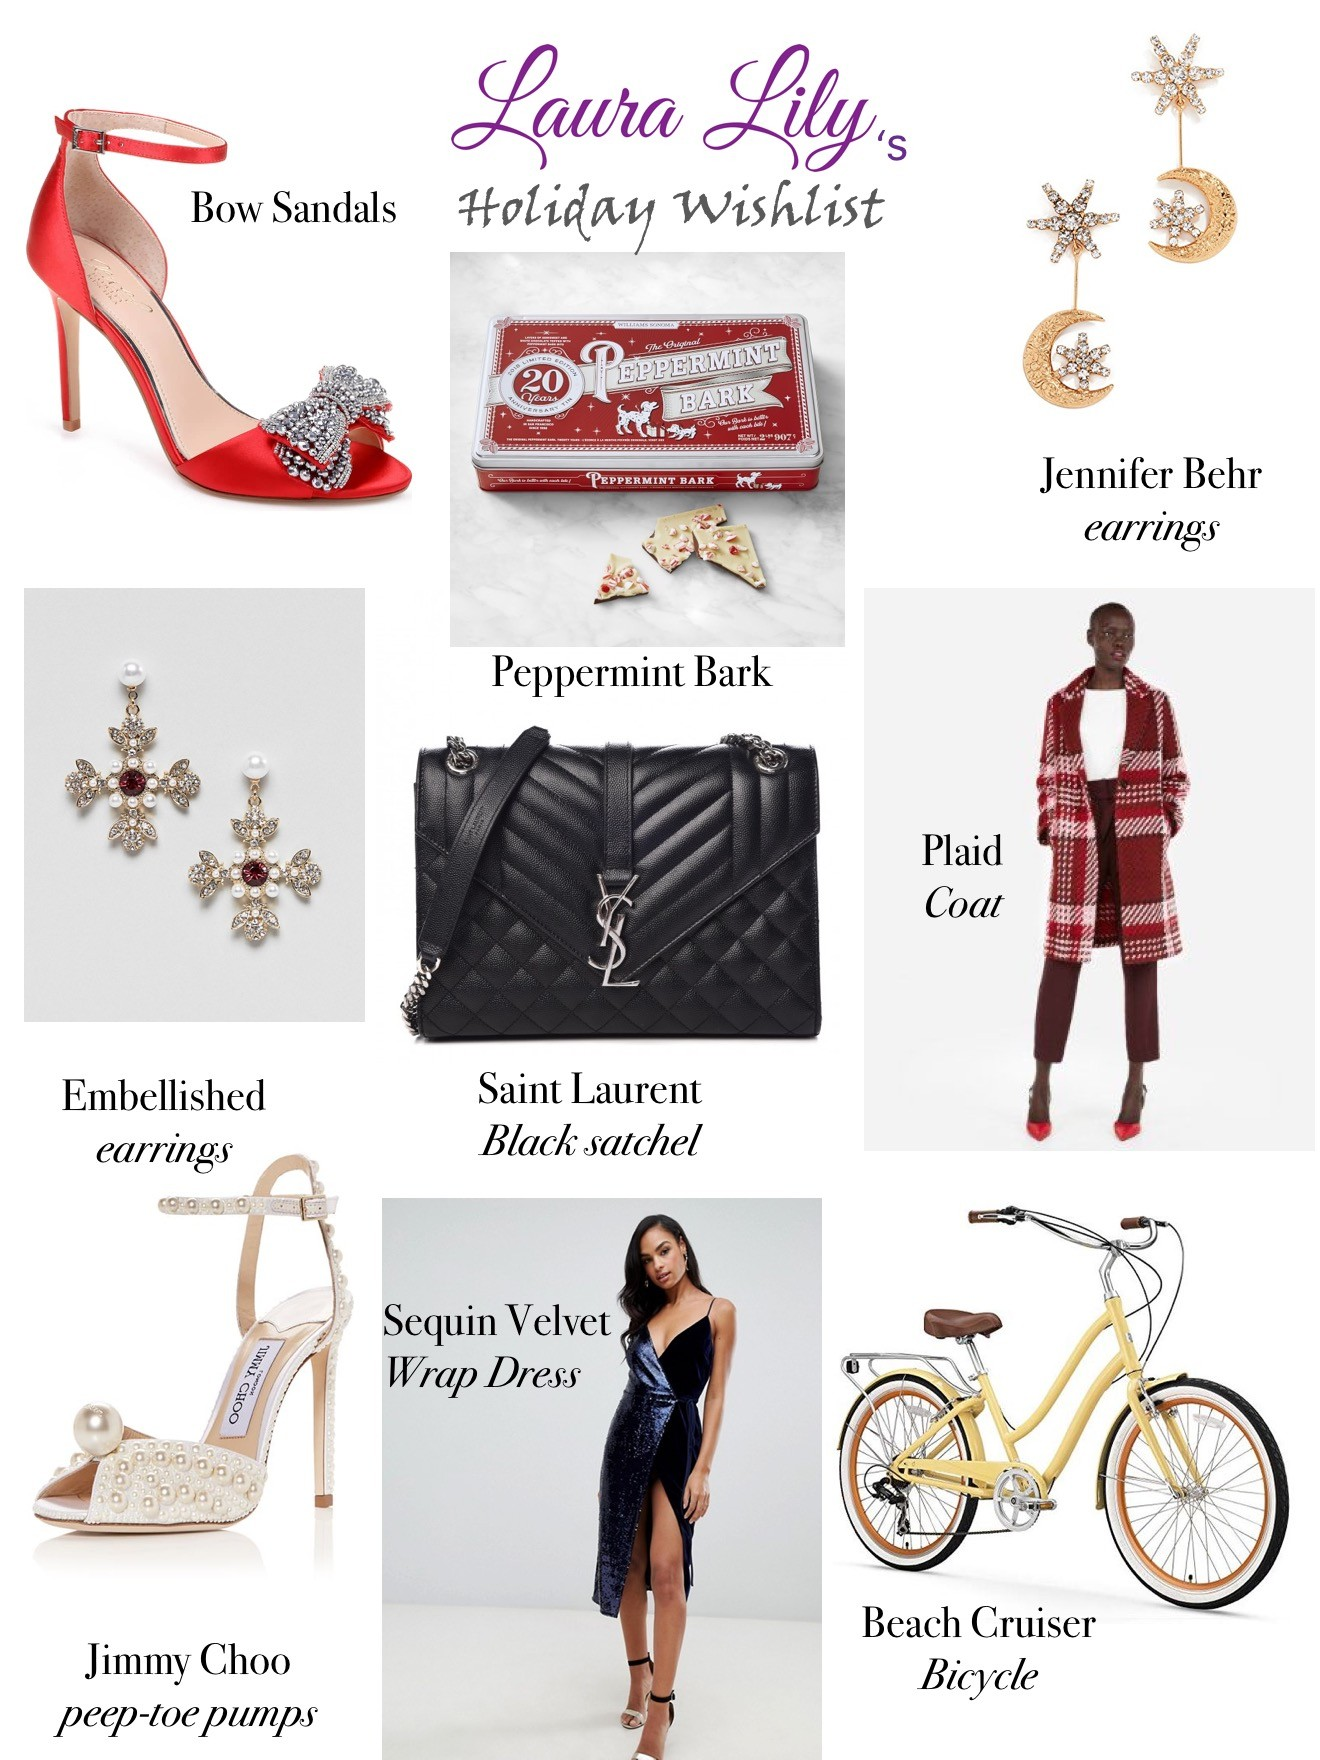 Christmas | Nordstrom | Saint Laurent | Jimmy Choo | Express | William-Sonoma | My Holiday Wishlist featured by top Los Angeles life and style blogger Laura Lily